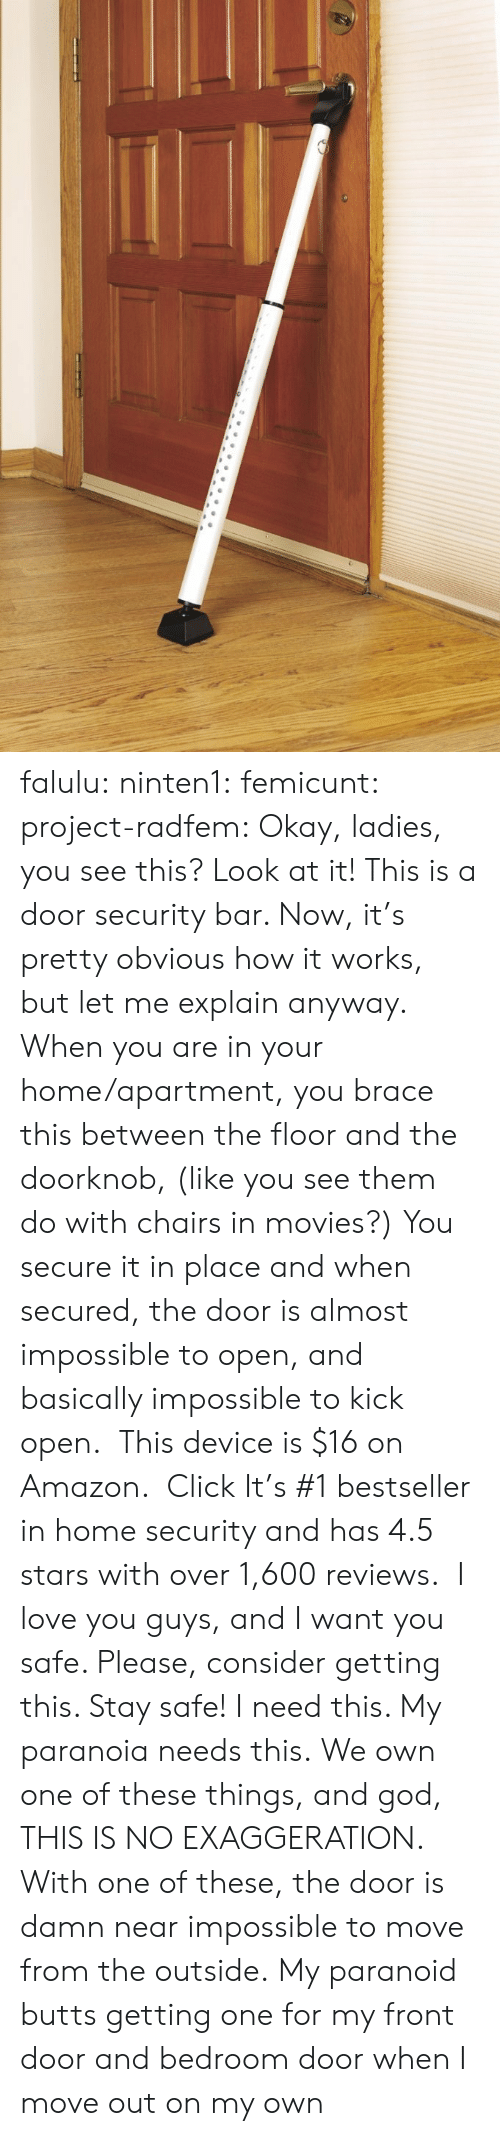 In Home: falulu: ninten1:  femicunt:  project-radfem:  Okay, ladies, you see this? Look at it! This is a door security bar. Now, it's pretty obvious how it works, but let me explain anyway. When you are in your home/apartment, you brace this between the floor and the doorknob, (like you see them do with chairs in movies?) You secure it in place and when secured, the door is almost impossible to open, and basically impossible to kick open. This device is $16 on Amazon.Click It's #1 bestseller in home security and has 4.5 stars with over 1,600 reviews. I love you guys, and I want you safe. Please, consider getting this. Stay safe!  I need this. My paranoia needs this.  We own one of these things, and god, THIS IS NO EXAGGERATION. With one of these, the door is damn near impossible to move from the outside.  My paranoid butts getting one for my front door and bedroom door when I move out on my own